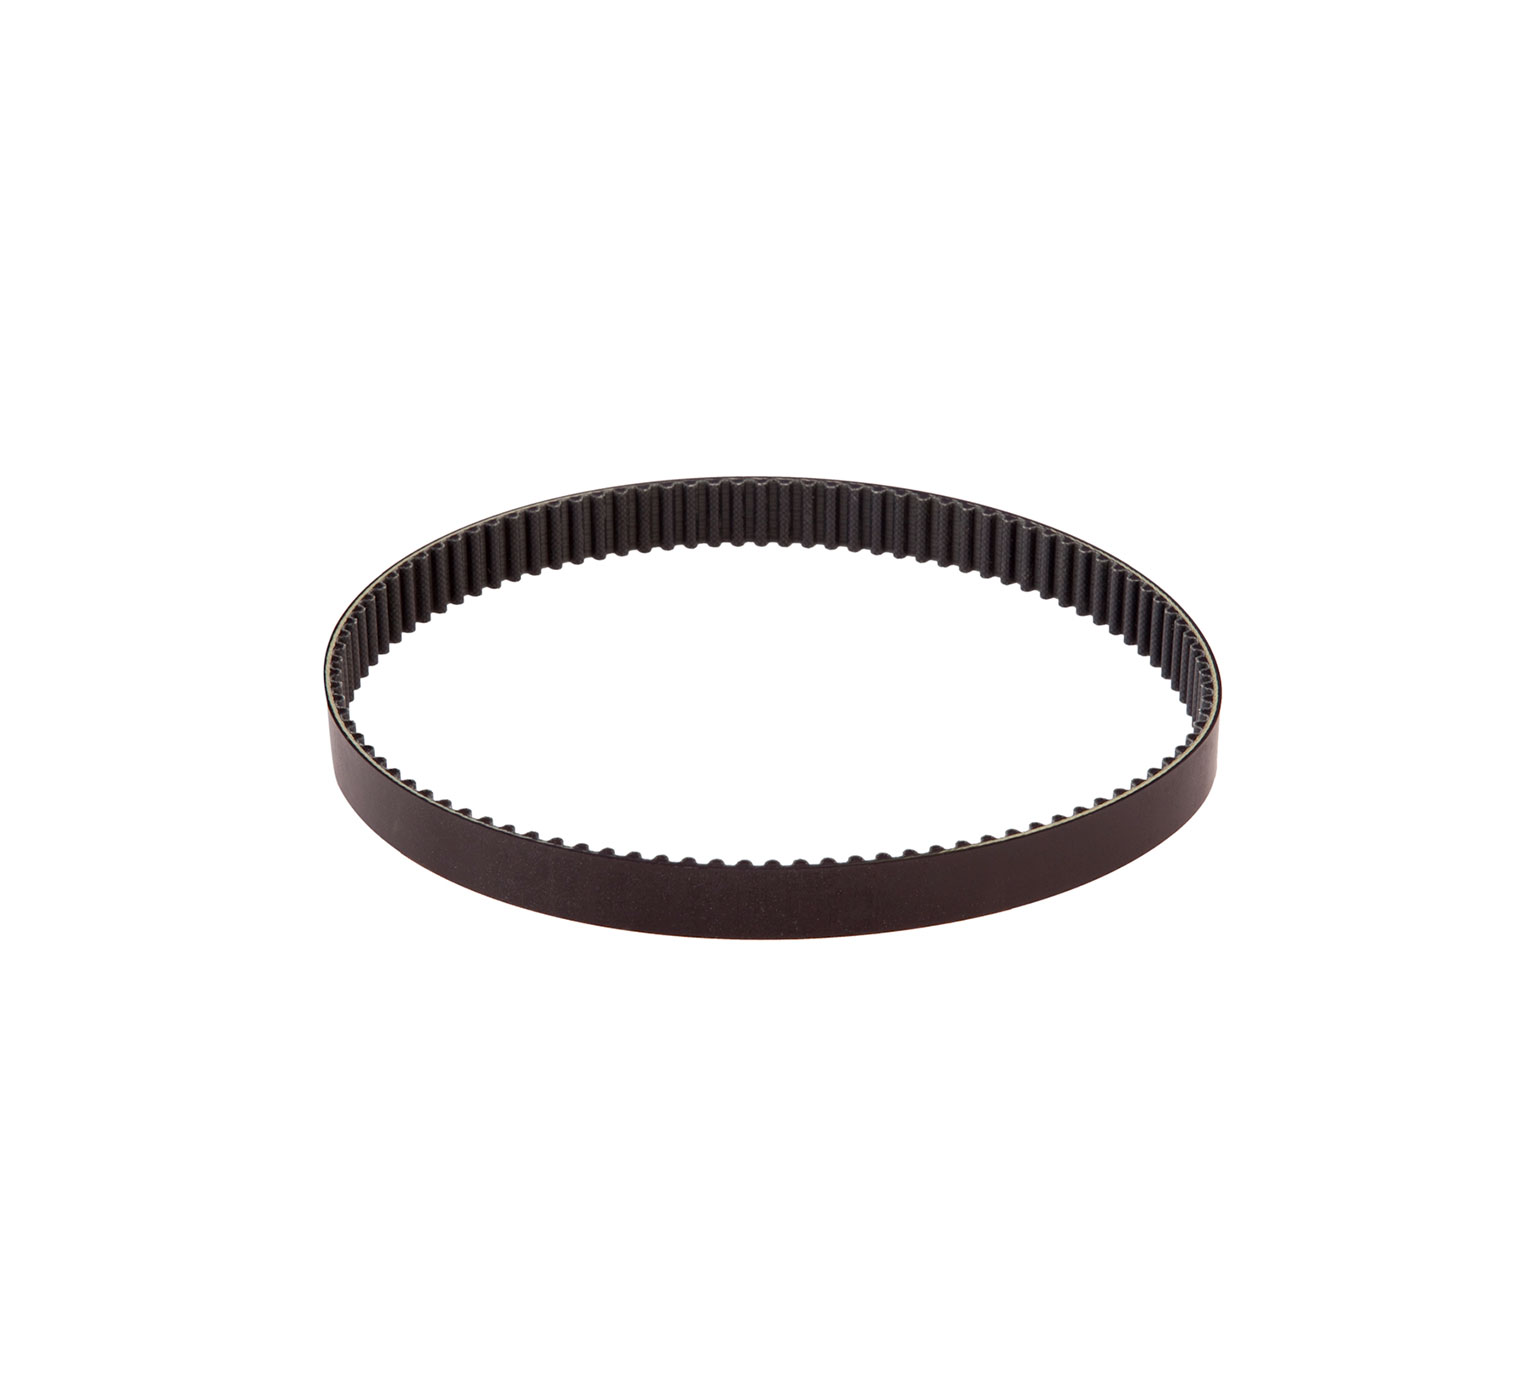 377505 Poly Chain Cogged Brush Drive Belt - 19.69 x 0.59 in alt 1